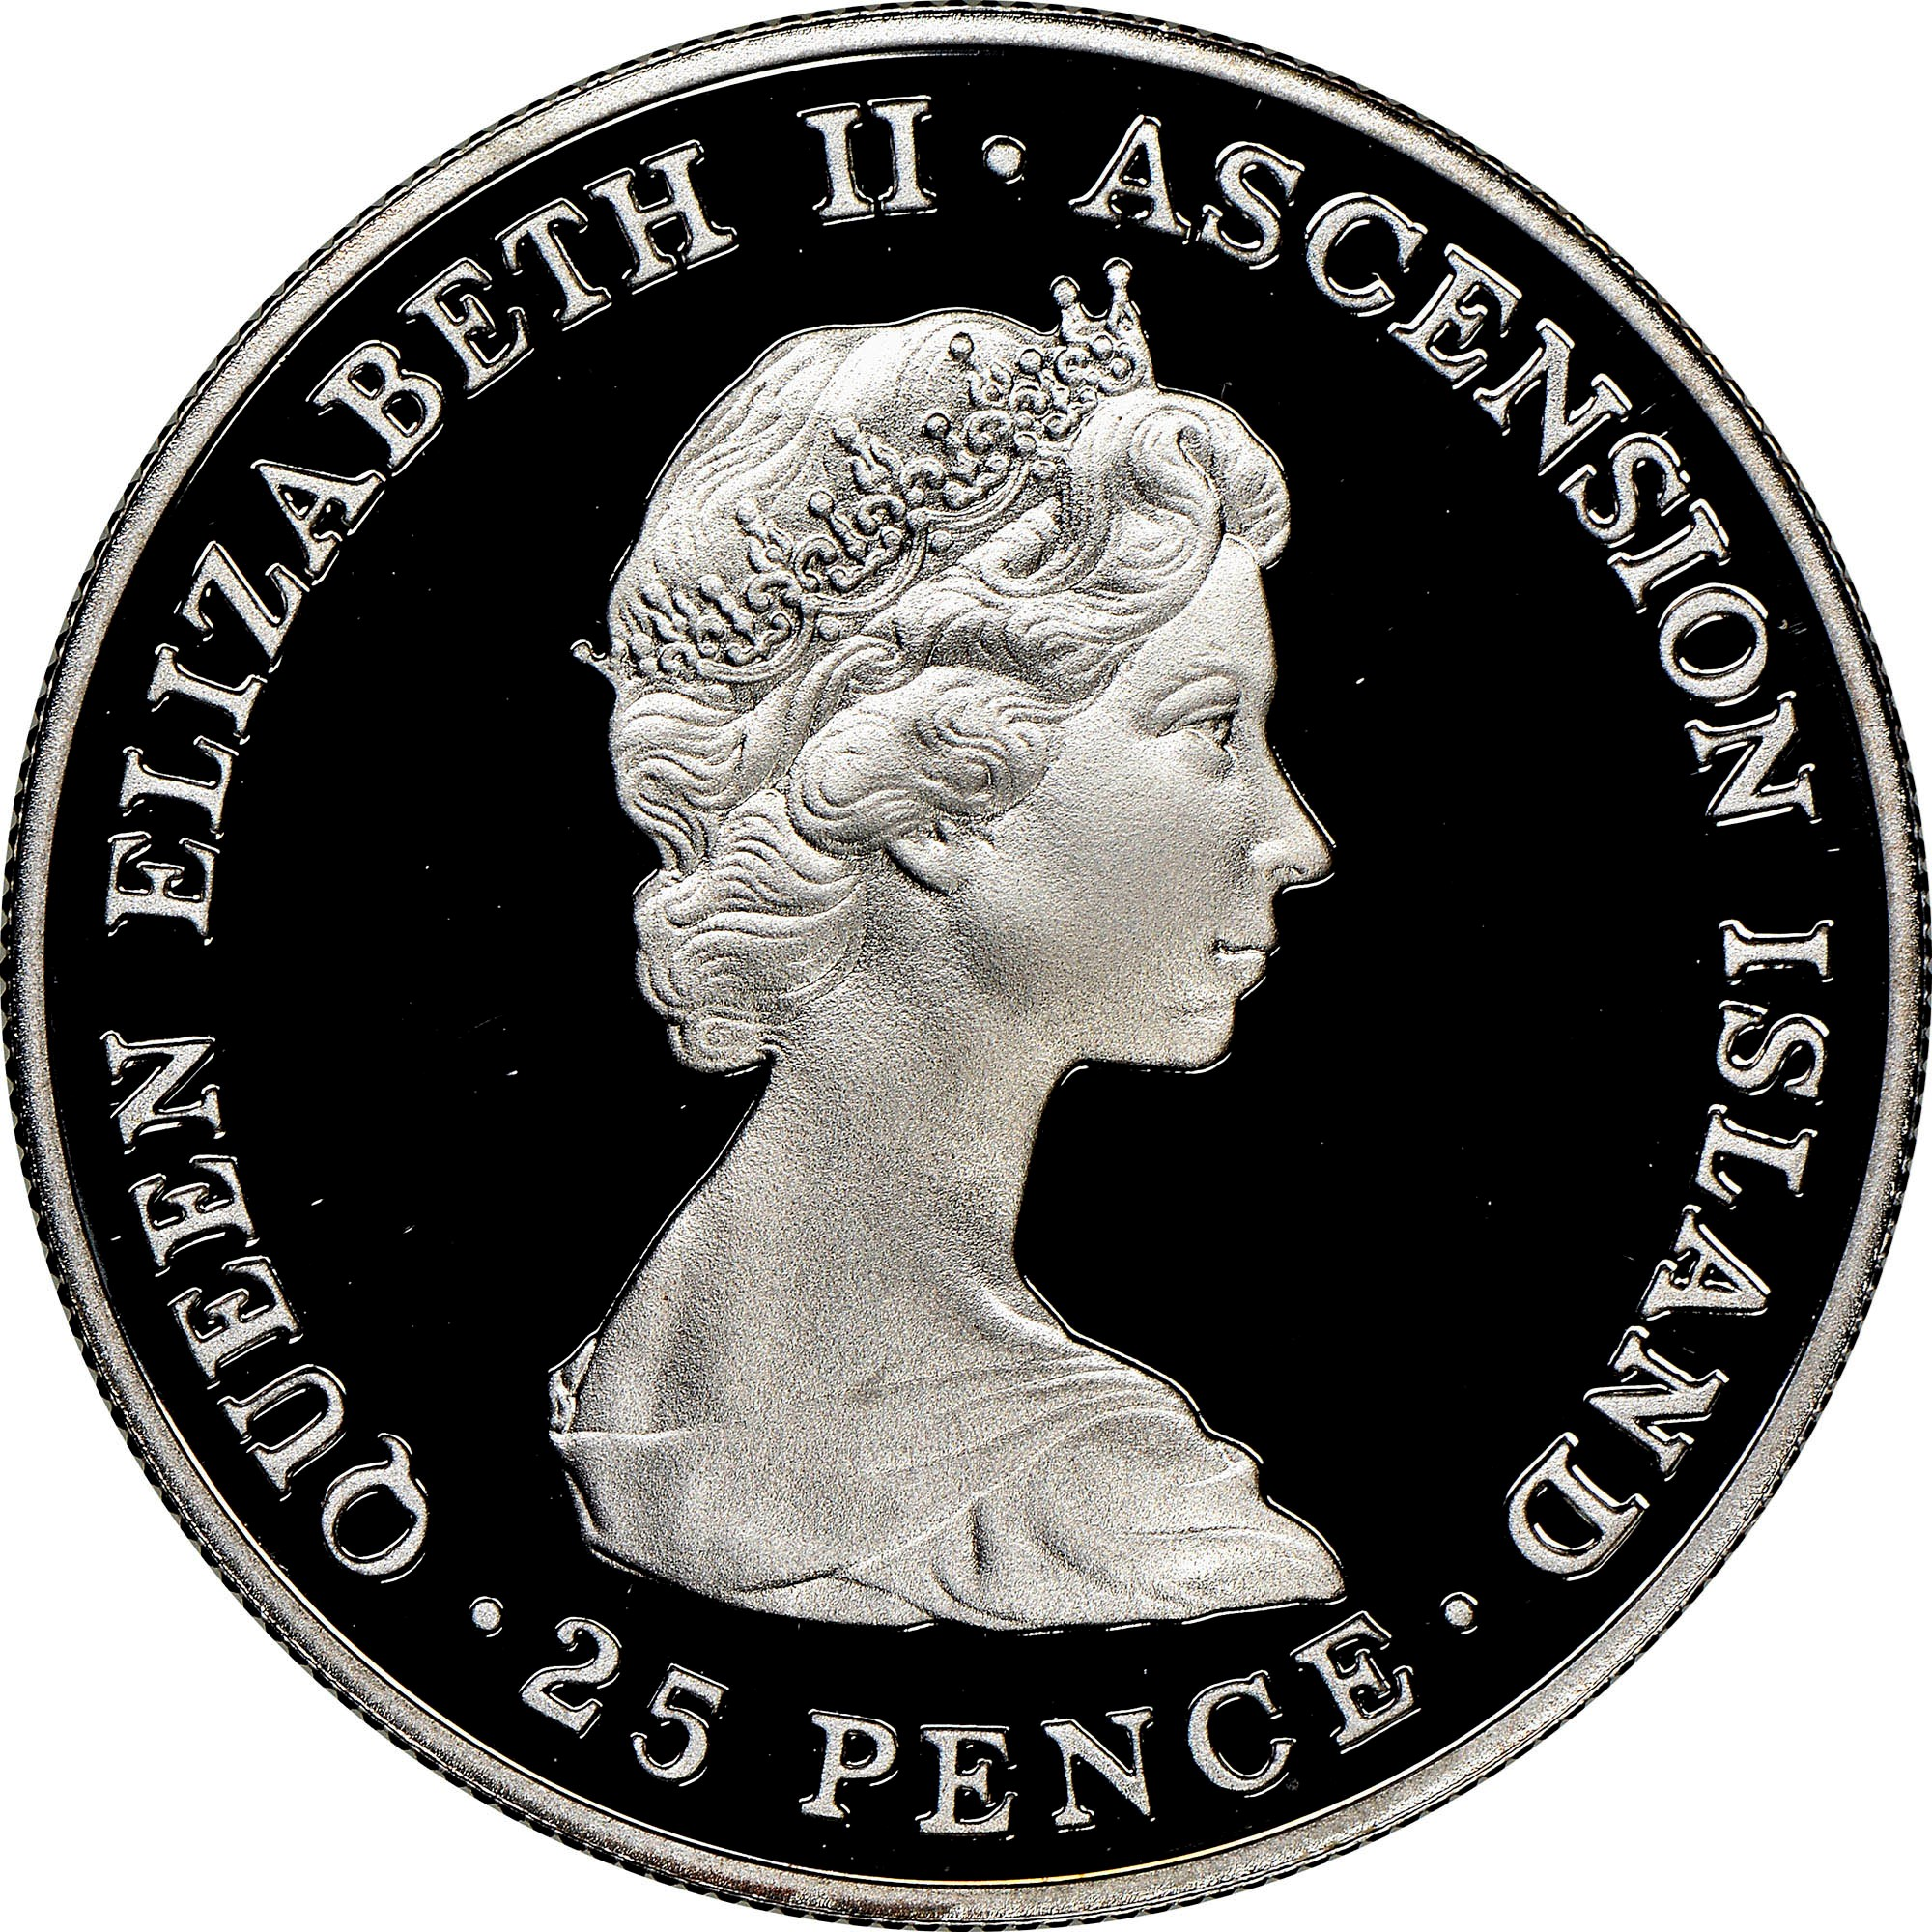 Ascension Island 25 Pence obverse